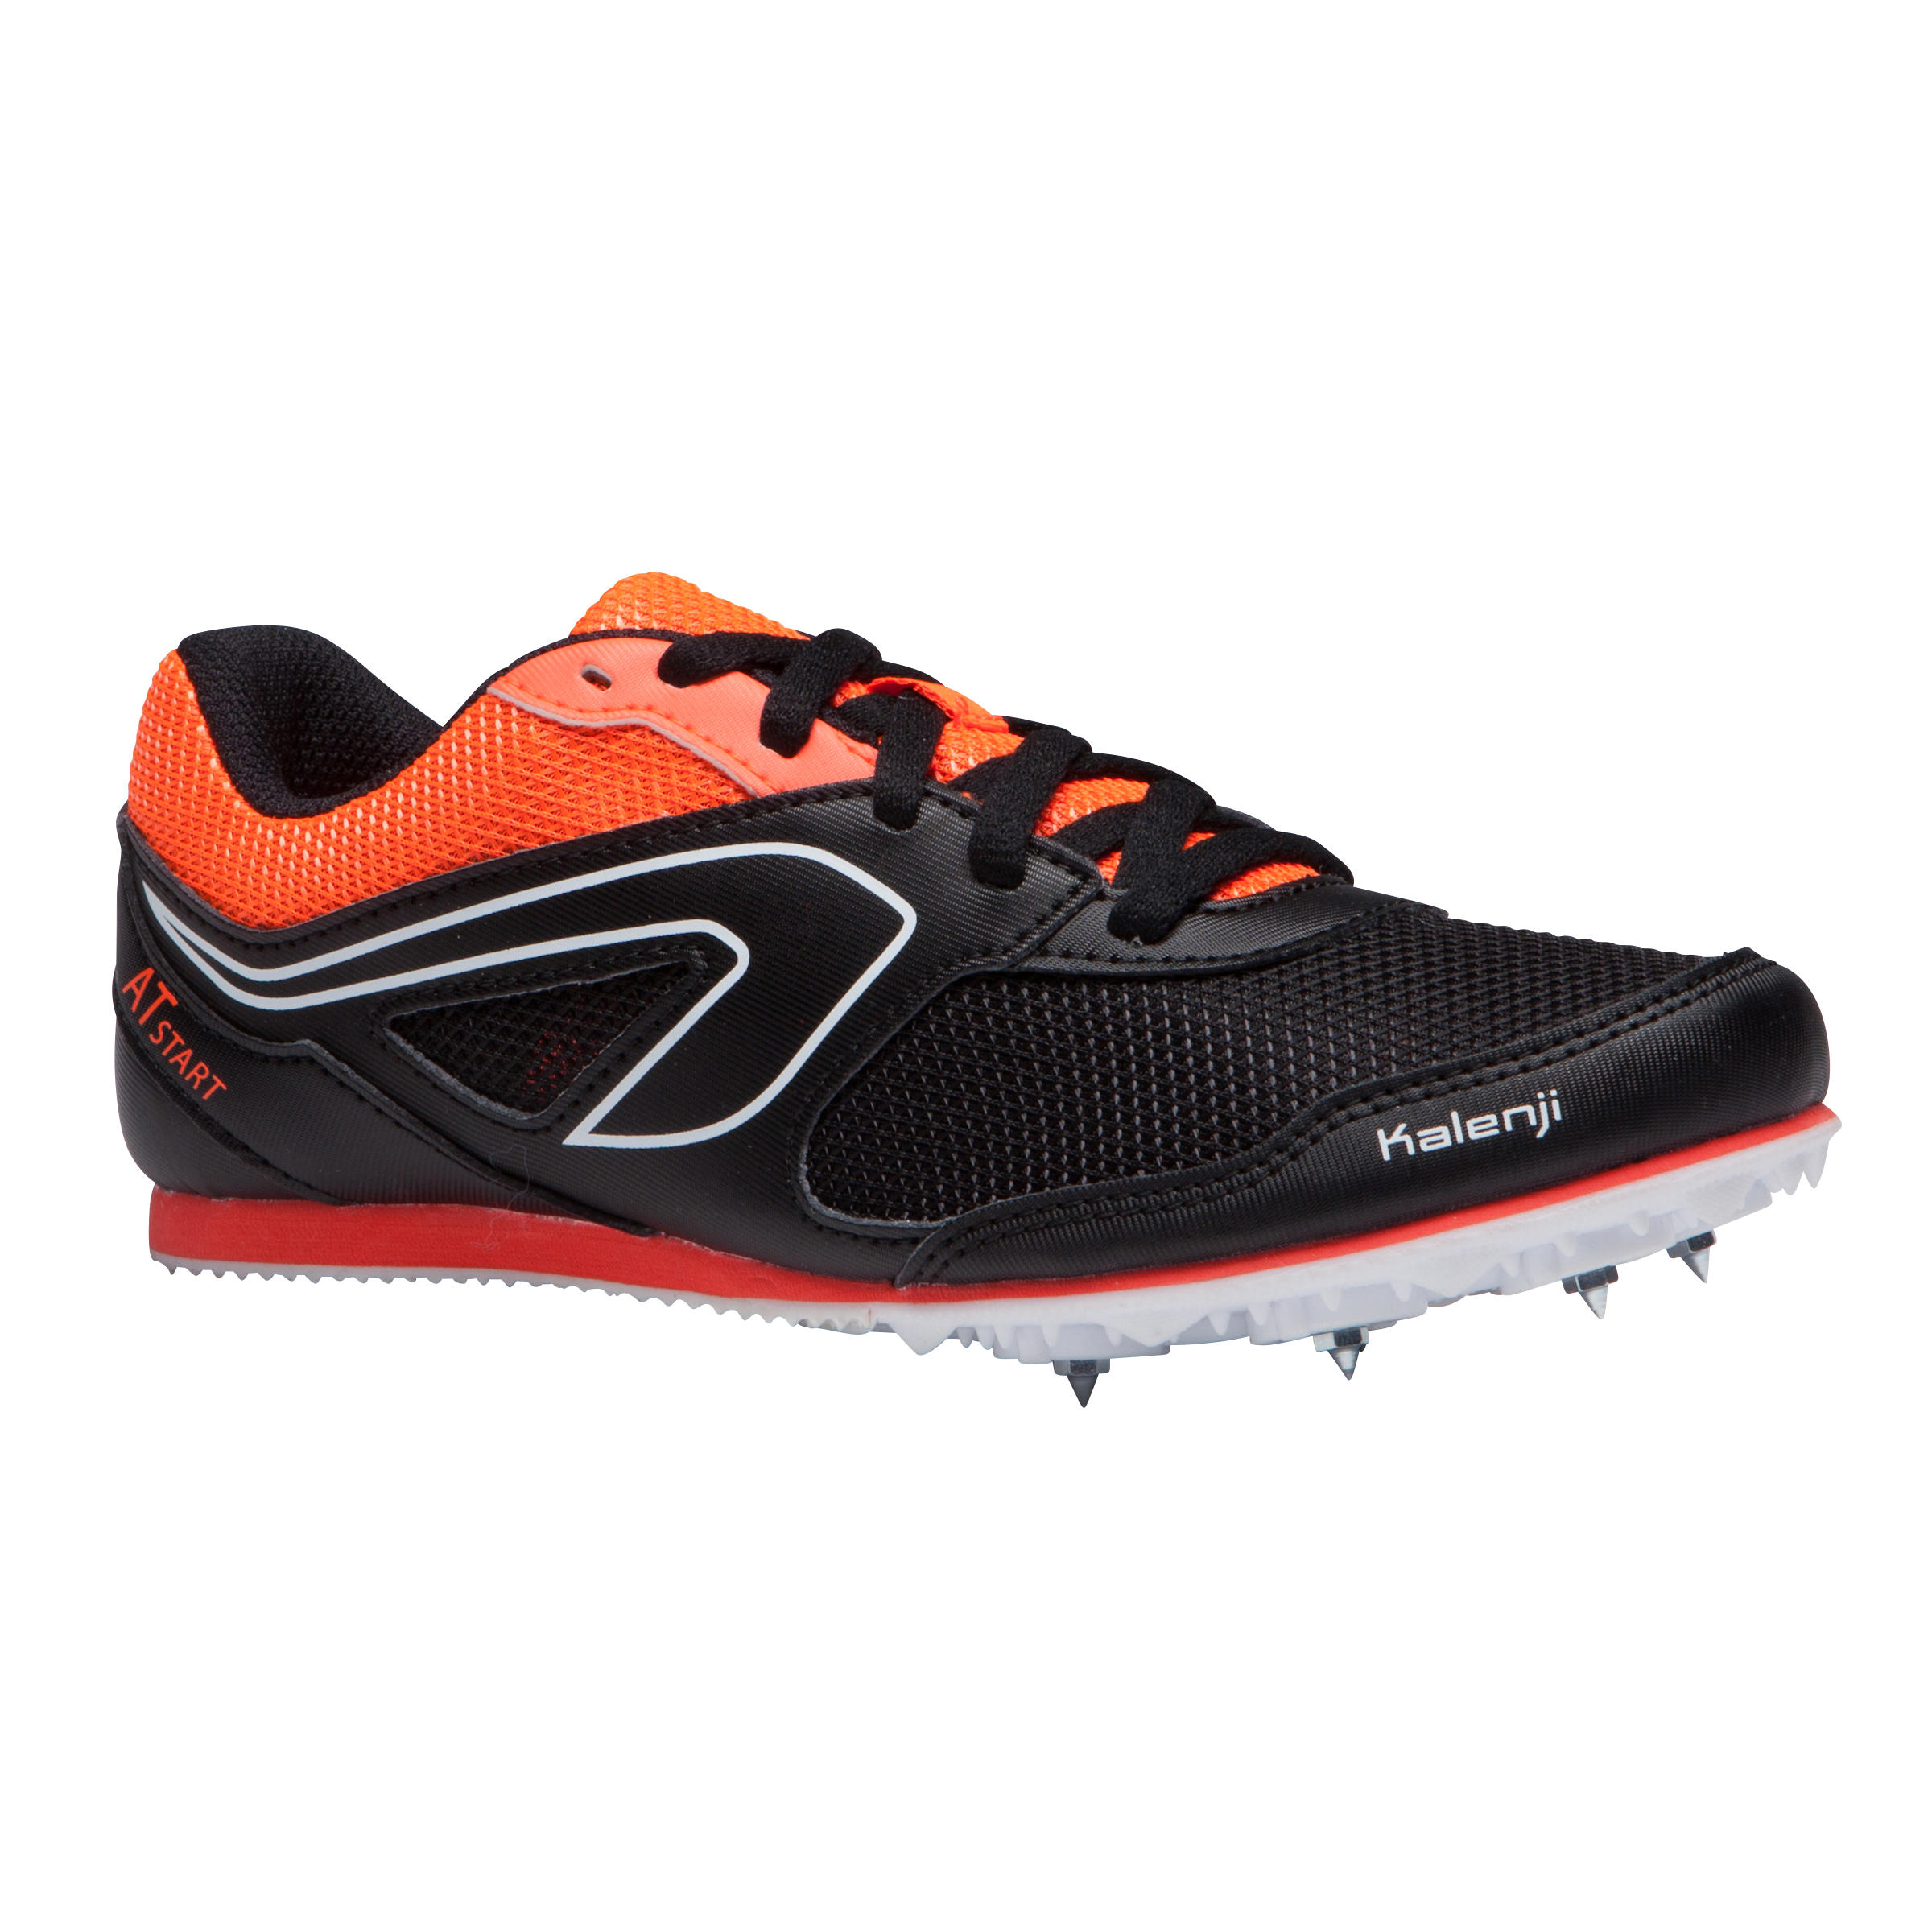 sports shoes running spikes